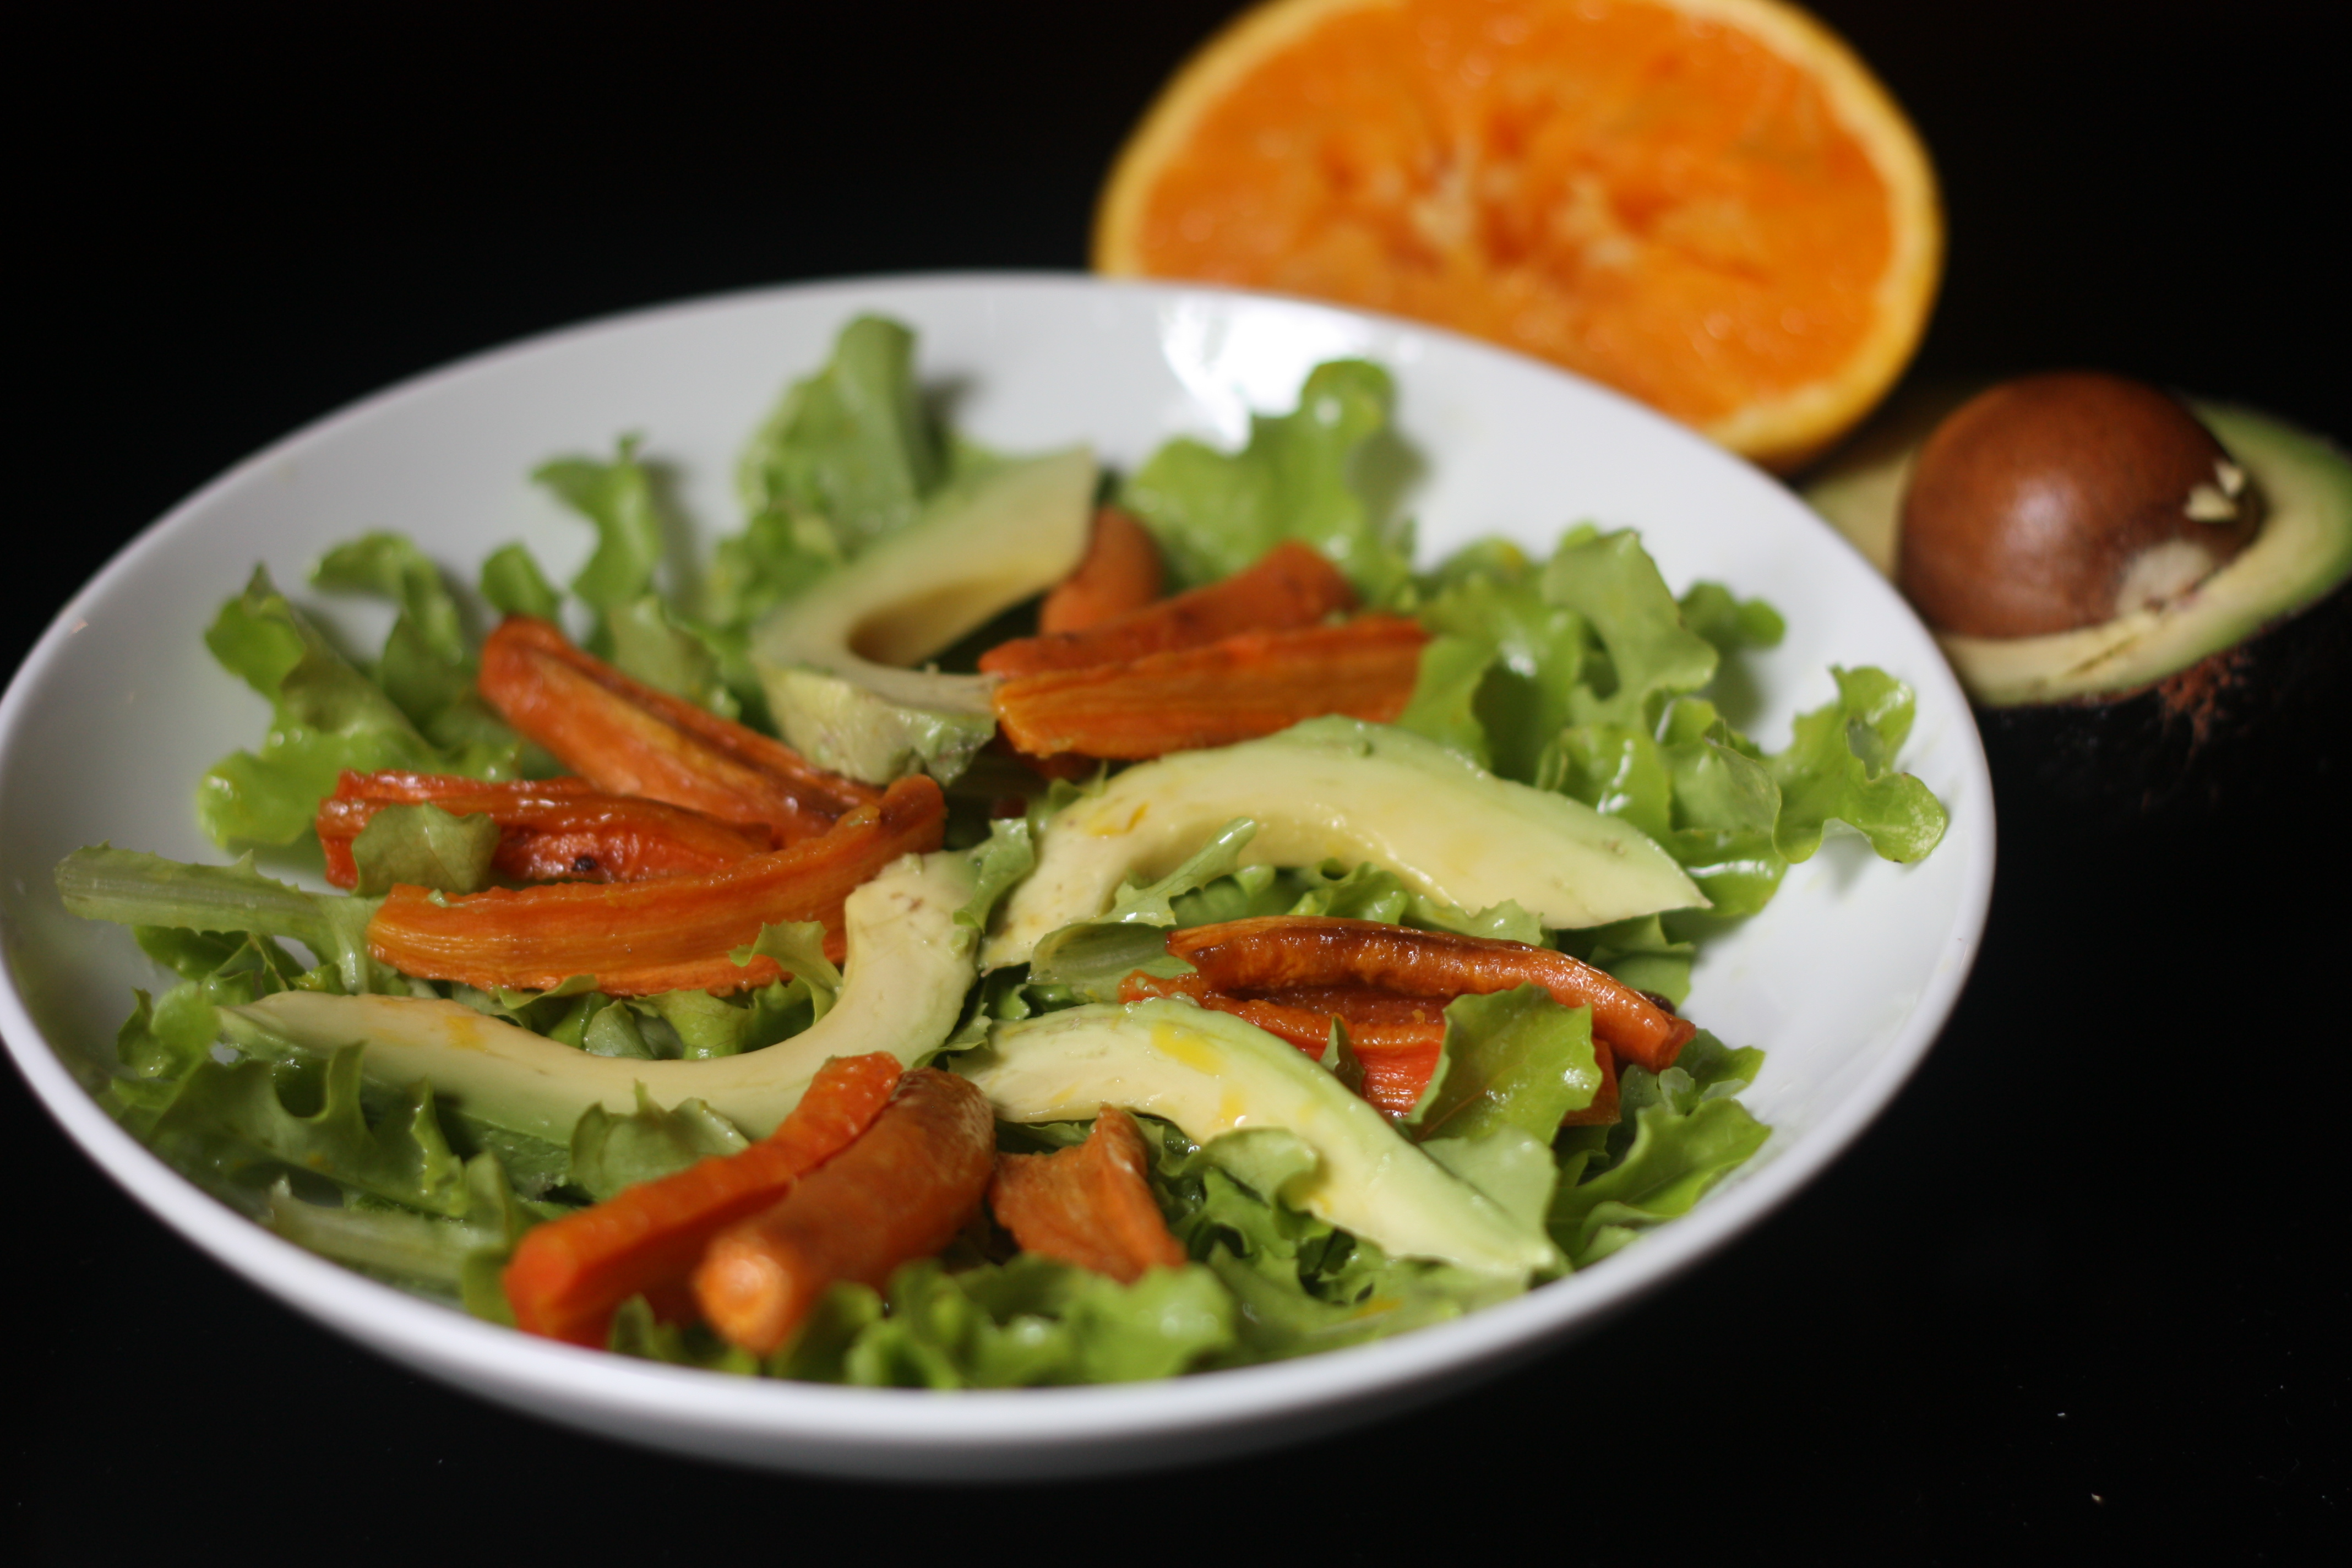 Orange-Roasted Carrot and Avocado Salad with Cumin Vinaigrette | Emmy ...